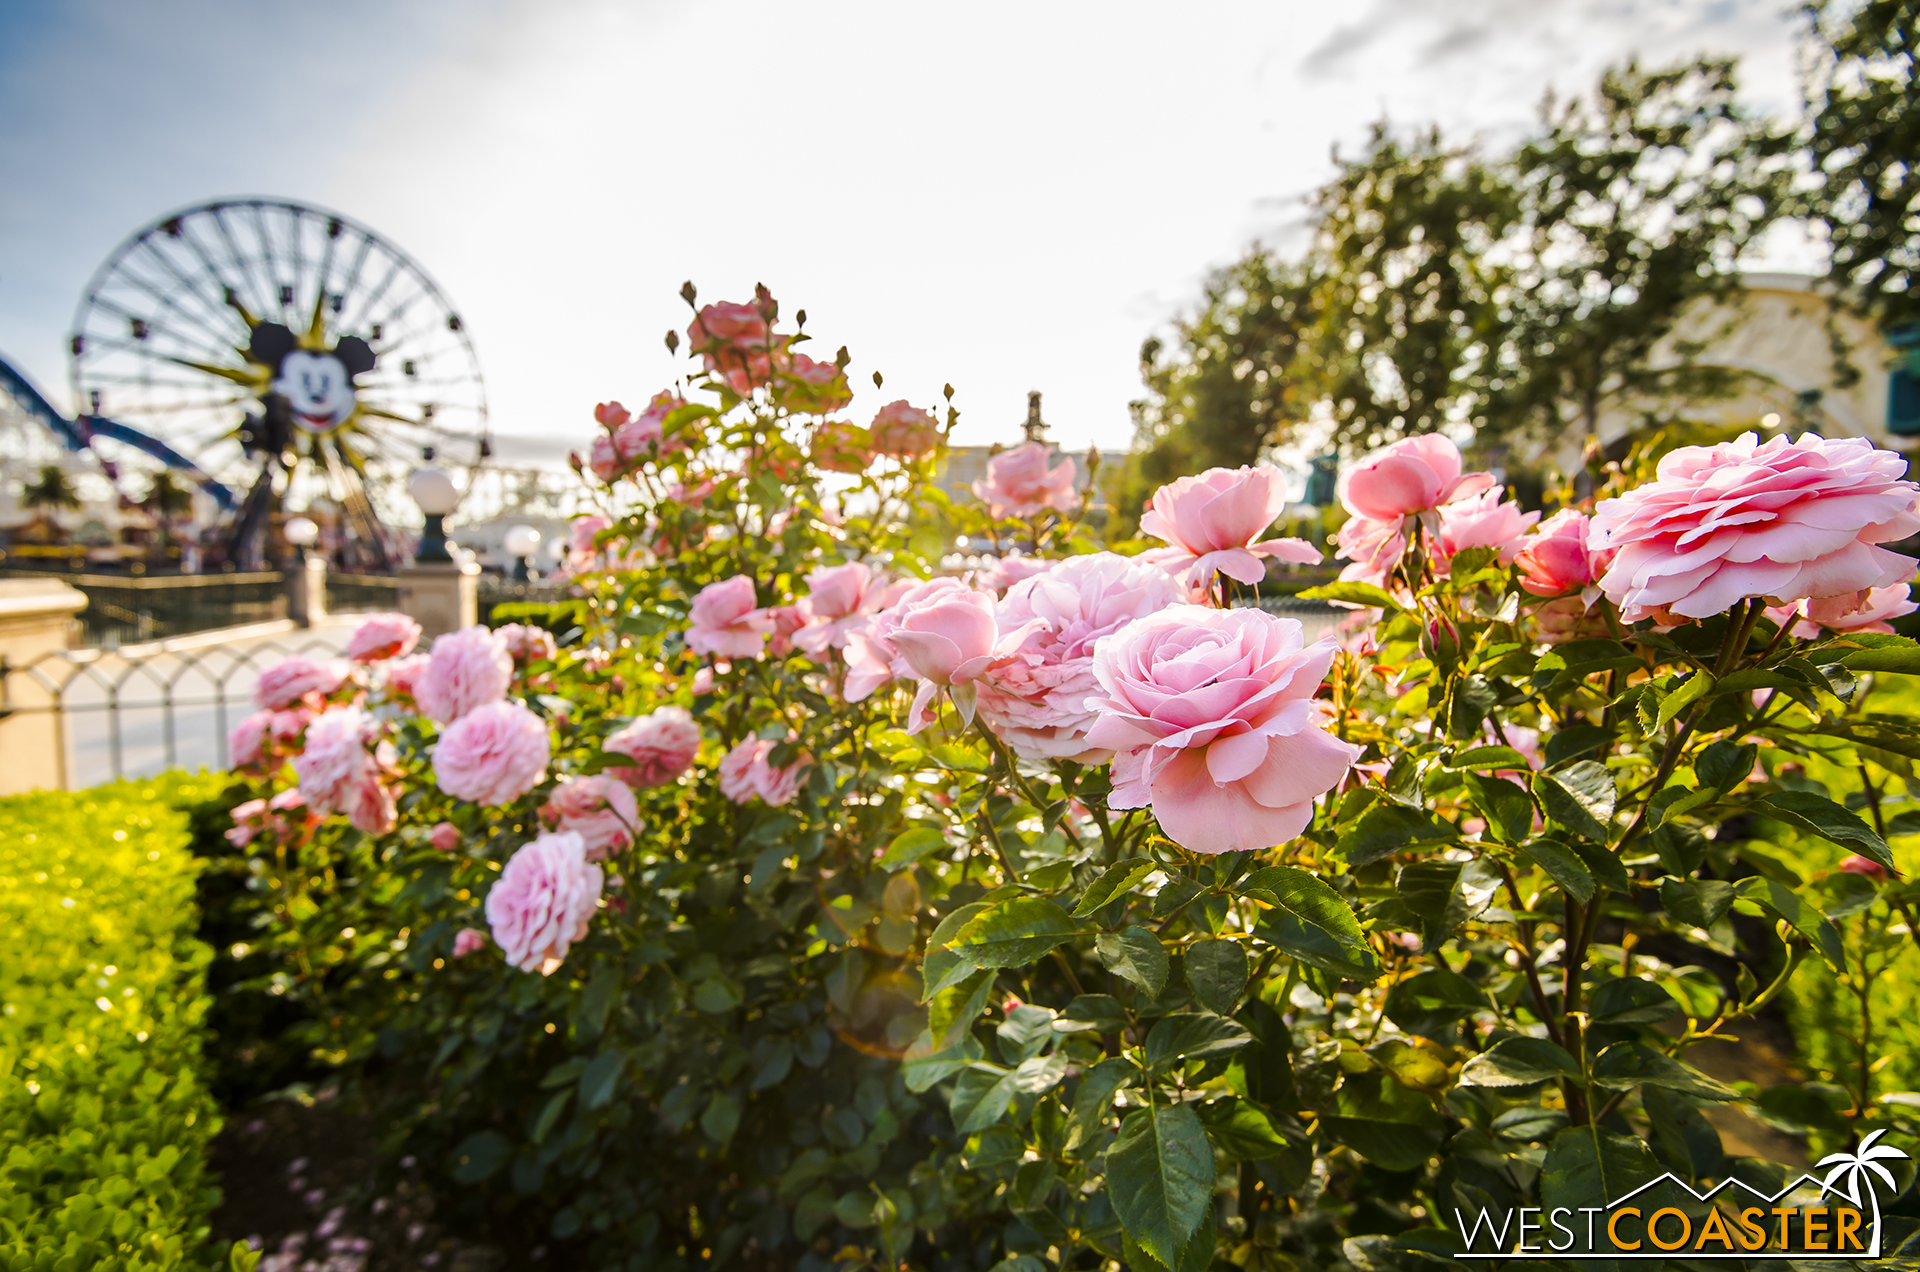 The roses in Paradise Park turned out exquisitely too.